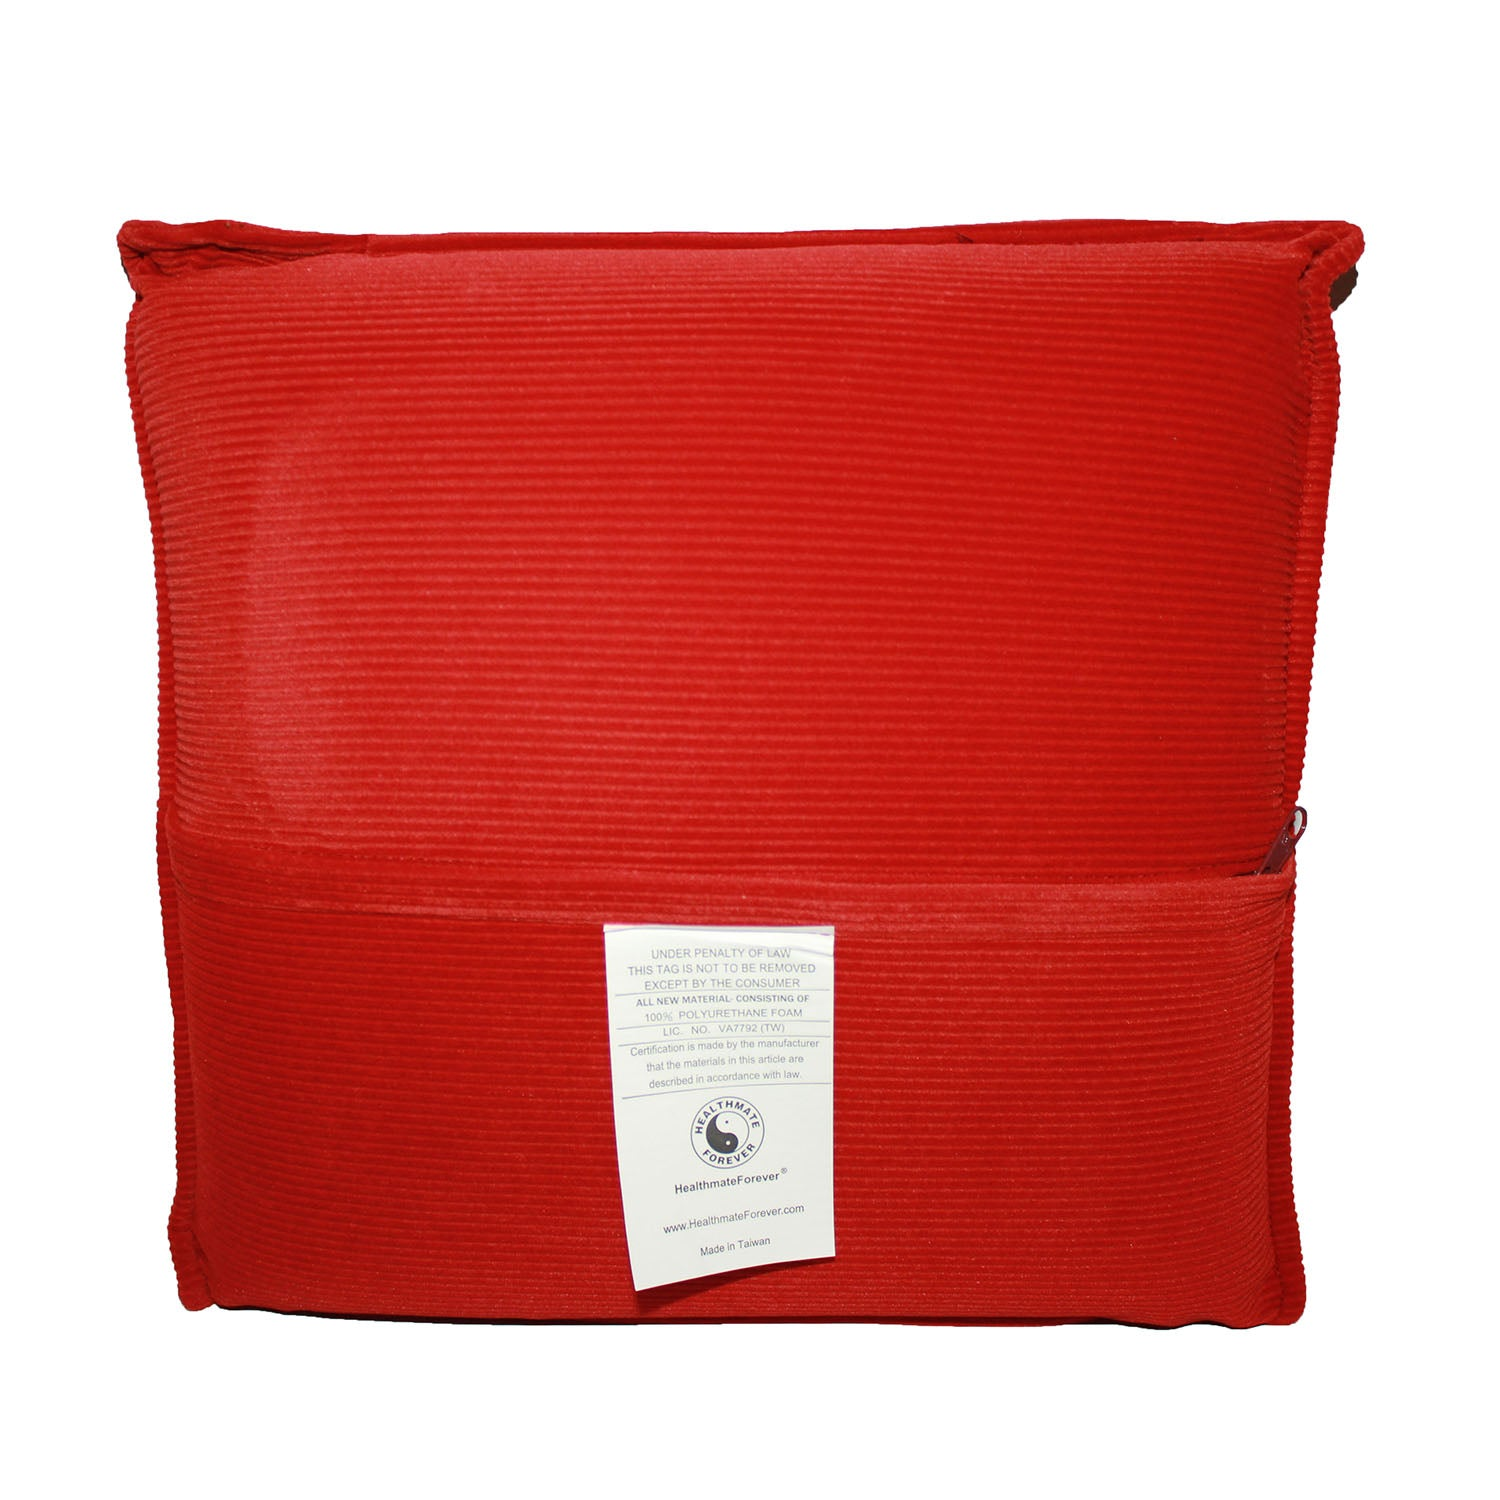 Pressure Activated Massage Pillow Brick Red - HealthmateForever.com